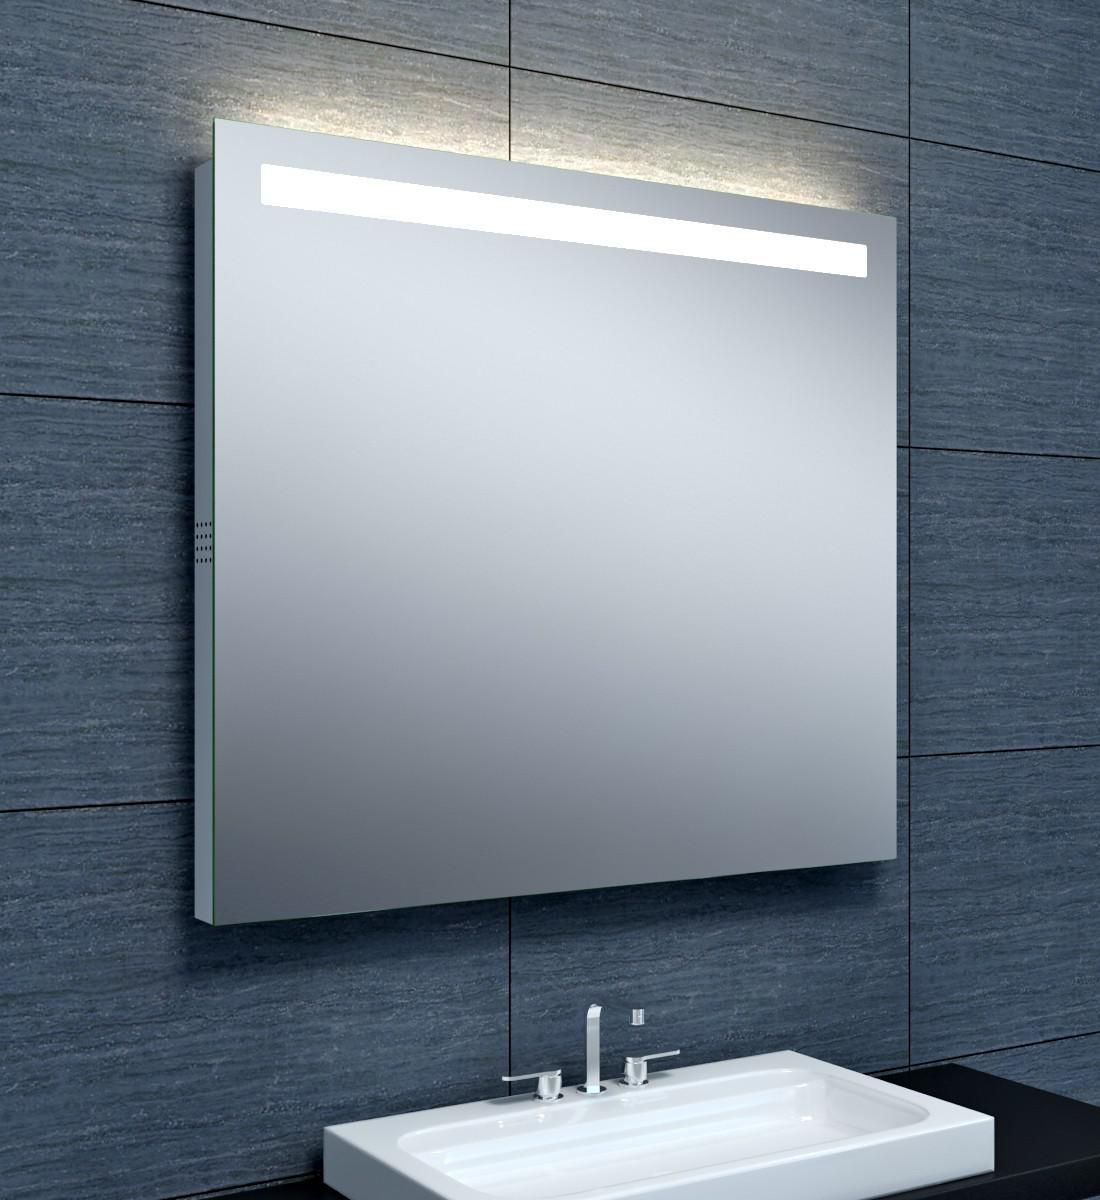 Alterna Miroir Musik Eclairage Led Bluetooth 90 X Hauteur 80 Cm Cedeo